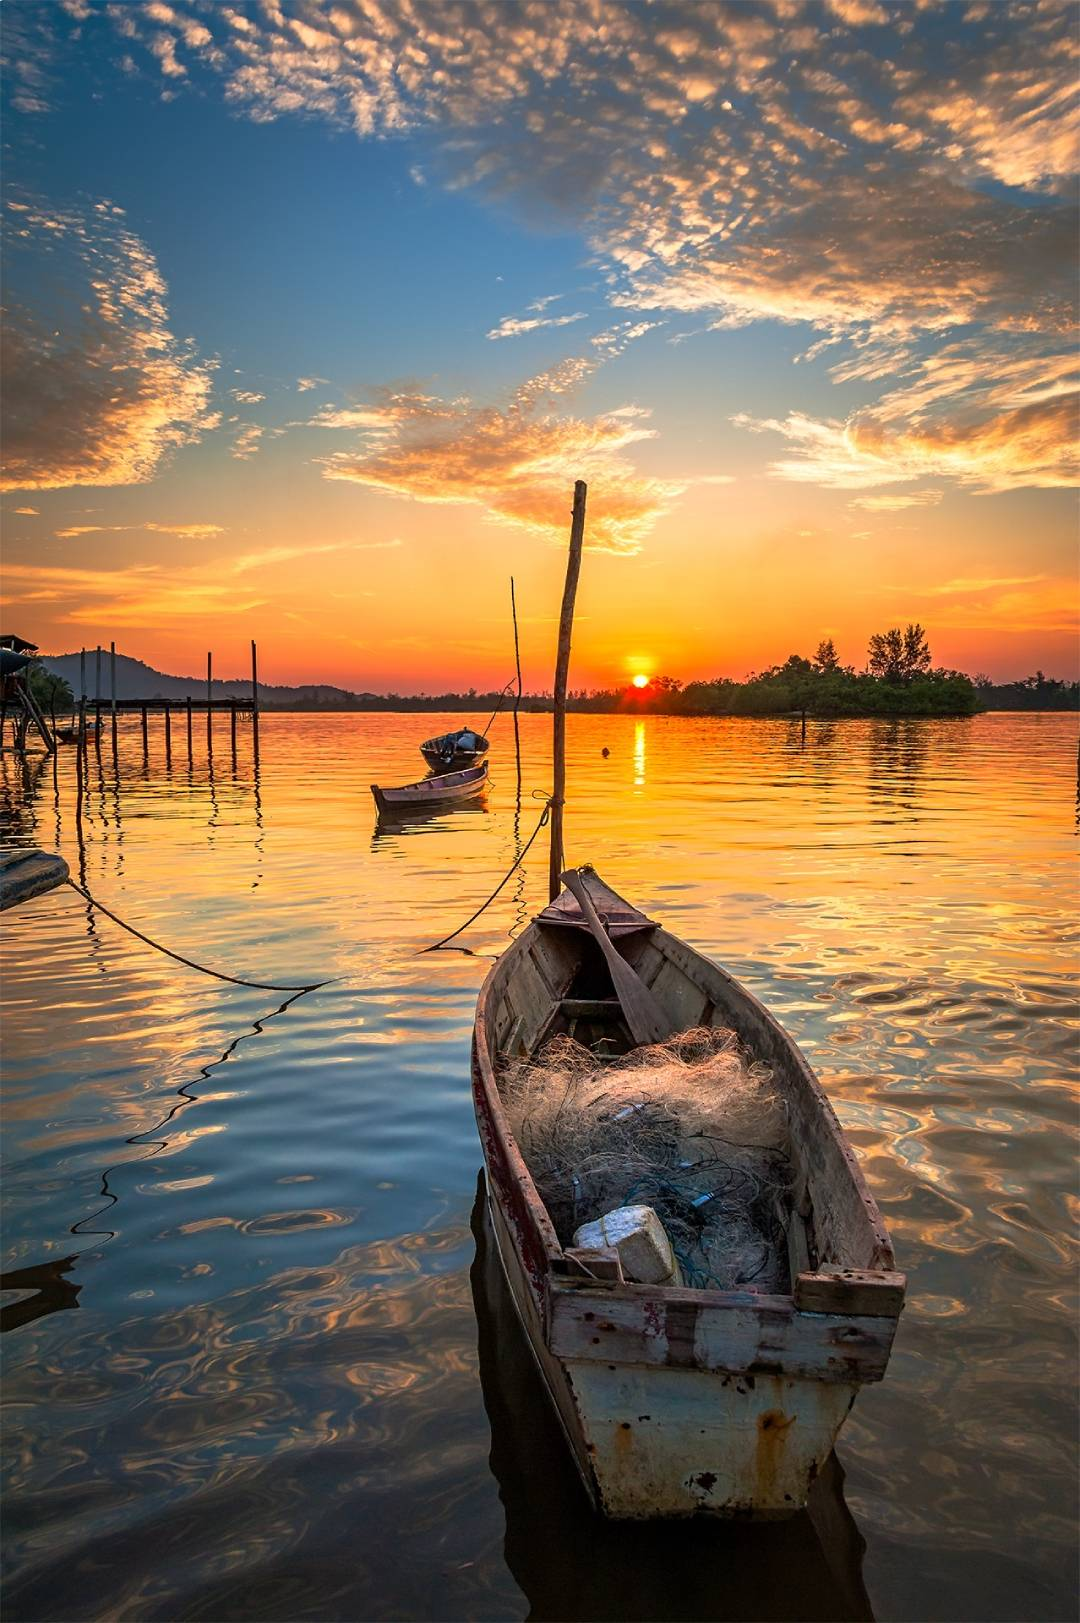 boat-overlooking-sunset